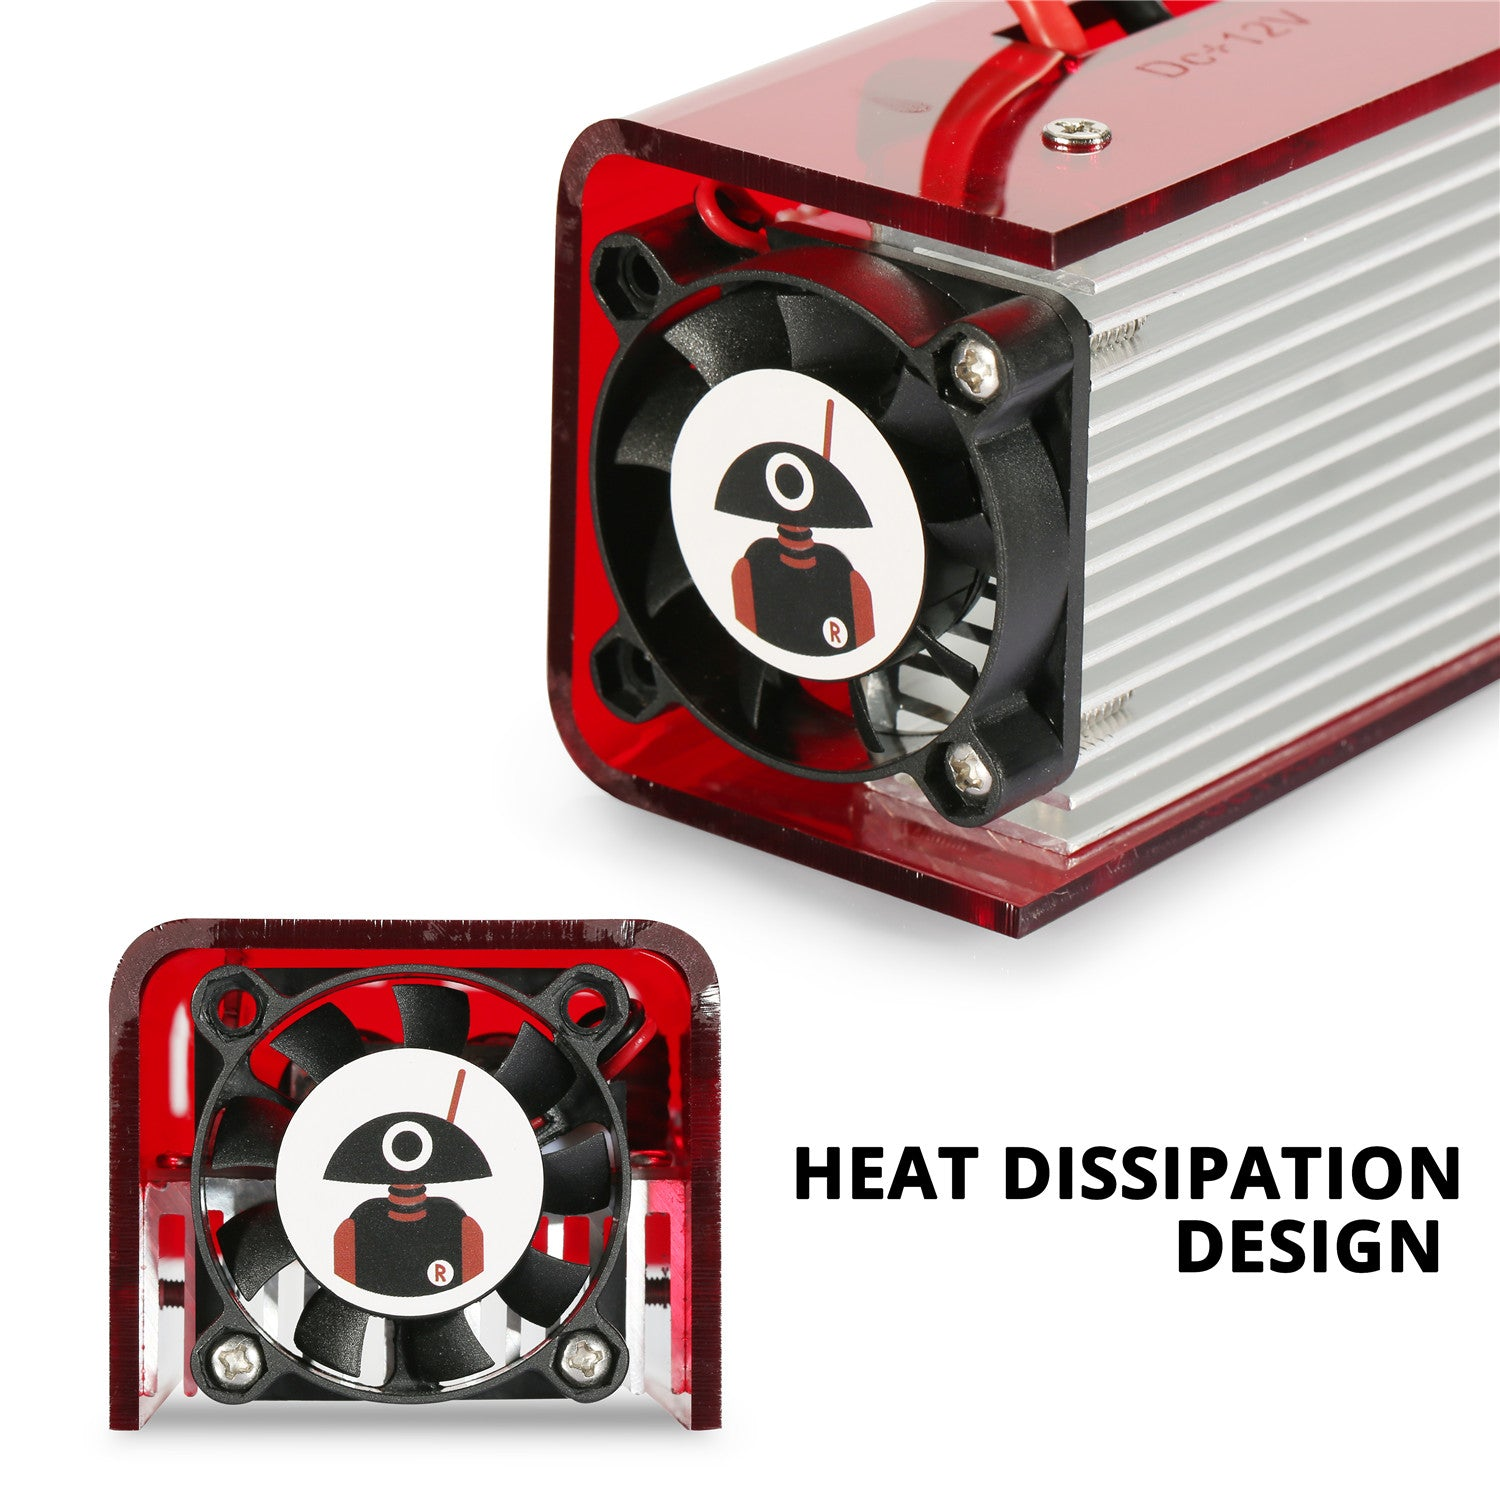 Heat Dissipation Details